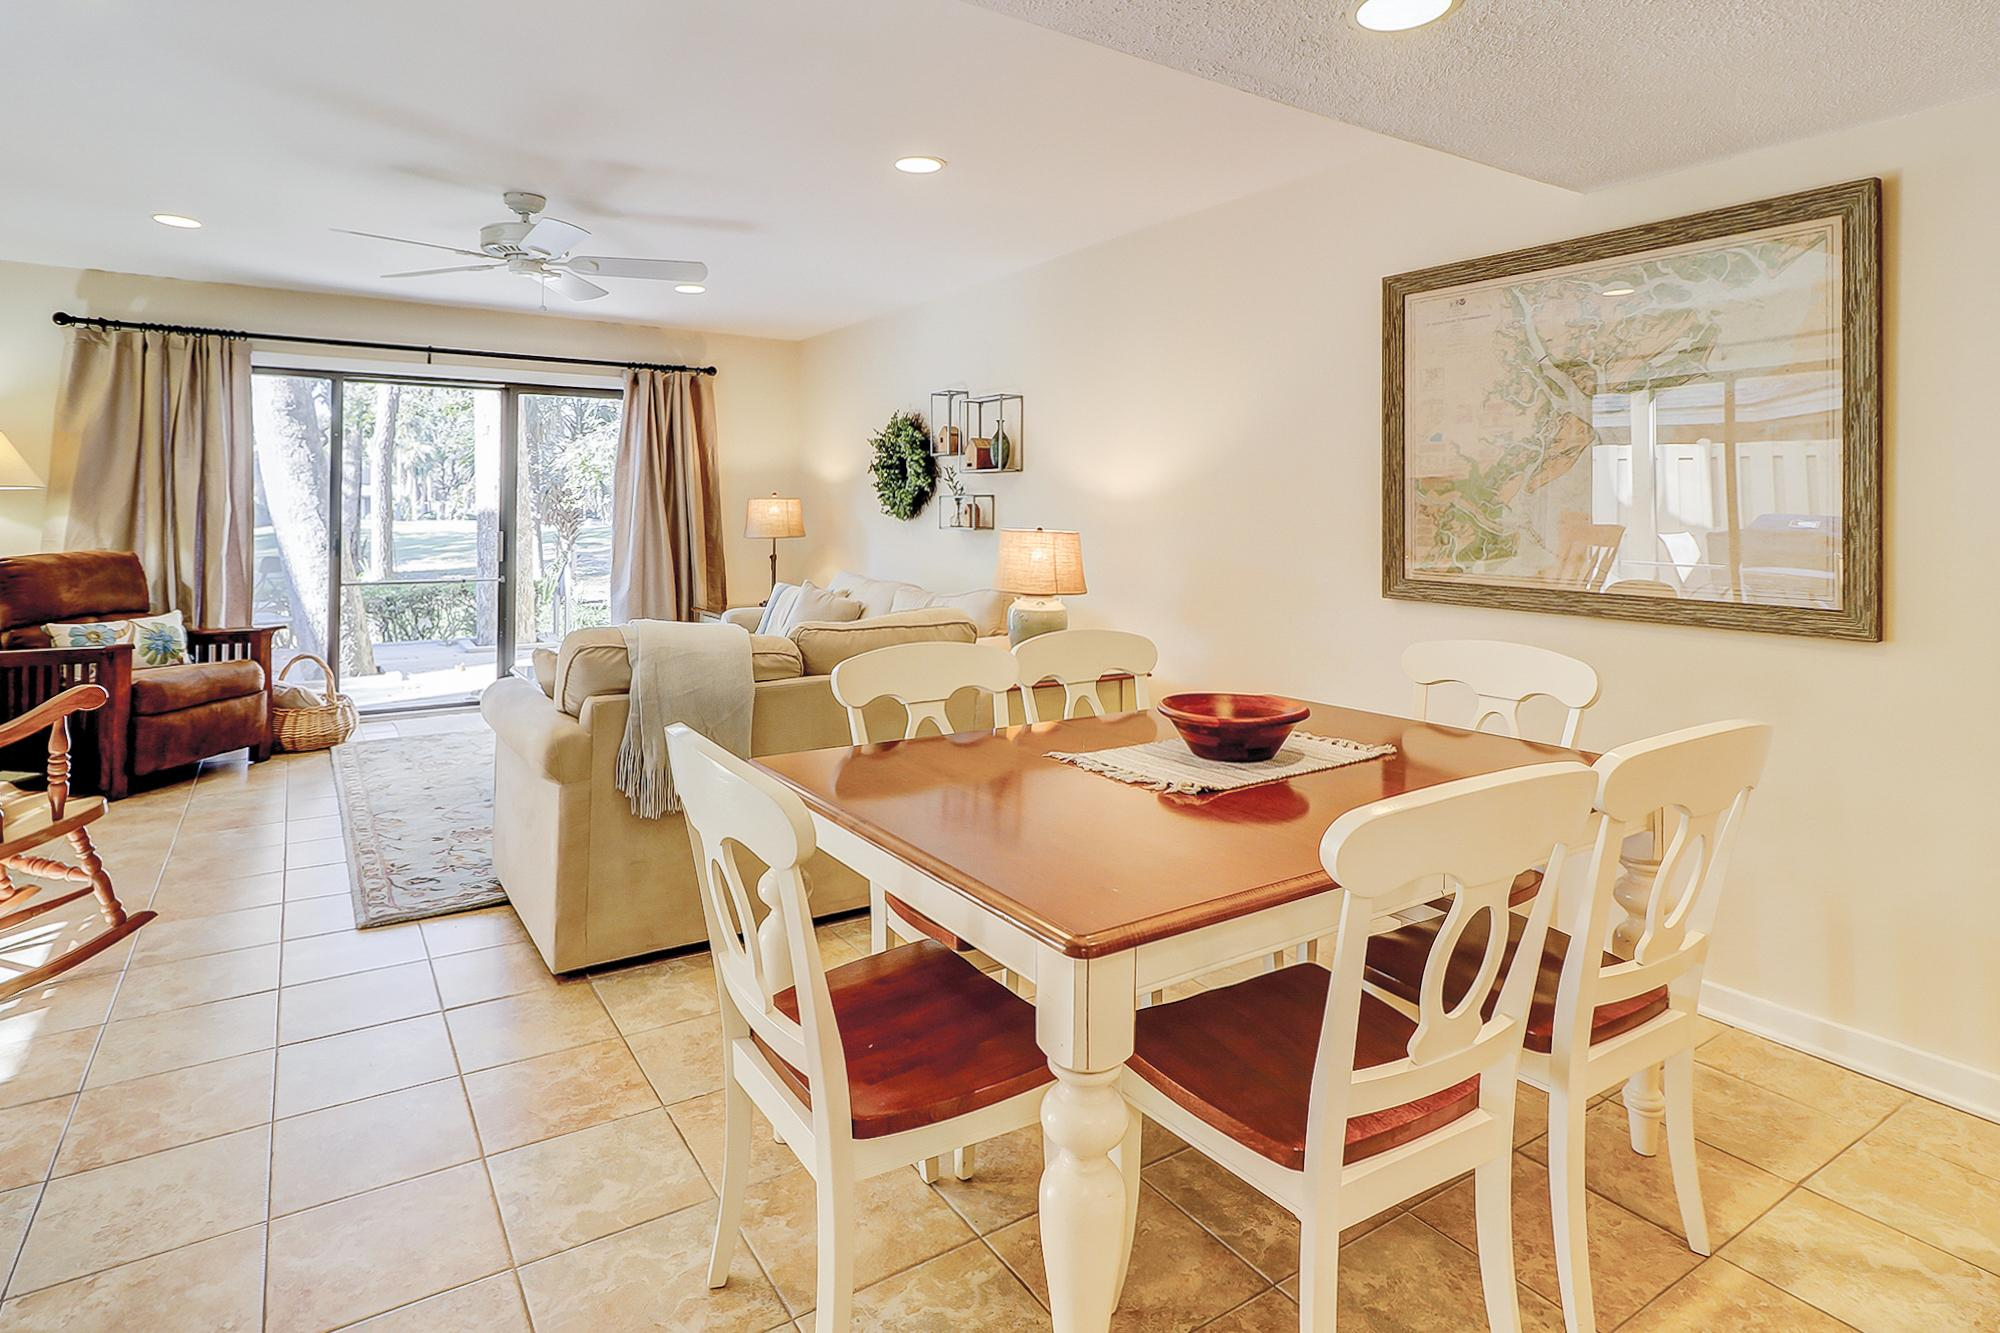 Great for entertaining, the kitchen, dining area, and living room are all open to each other.